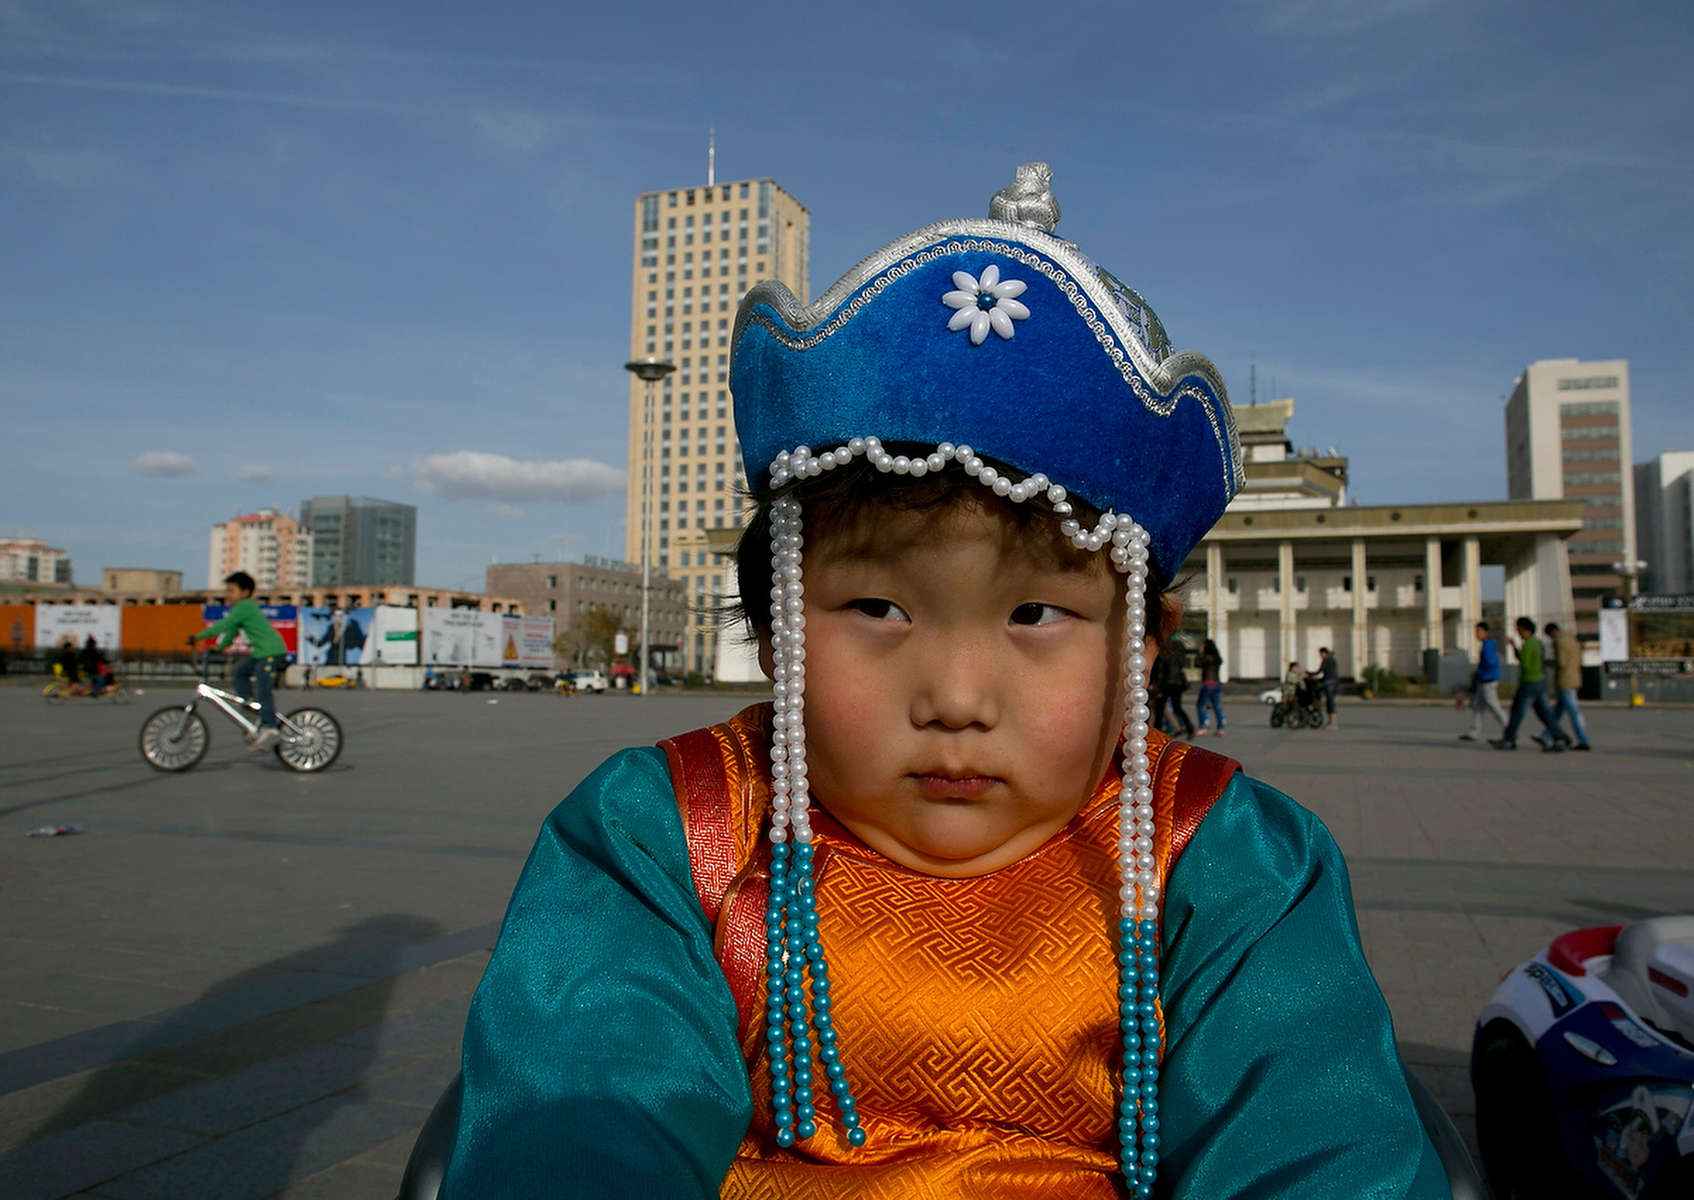 ULAANBATAAR, MONGOLIA - OCTOBER 18: A young Mongolian boy sits in a motorized toy car wearing traditional dress at Sukhbataar Square October 18, 2012 Ulaanbataar, Mongolia. Some 100 years ago, Mongolia gained independence from Qing China, and more than 20 years ago it removed itself from the Soviet Bloc. Since then, the country has been undergoing massive social, economic and political changes. The Oyu Tolgoi, the copper and gold mine is Mongolia's biggest foreign investment project to date adding an estimated 35% value to the country's GDP. Mongolia is a land of amazing contrasts and is the most sparsely populated country on earth with fewer than 3 million people. (Photo by Paula Bronstein/Getty Images)